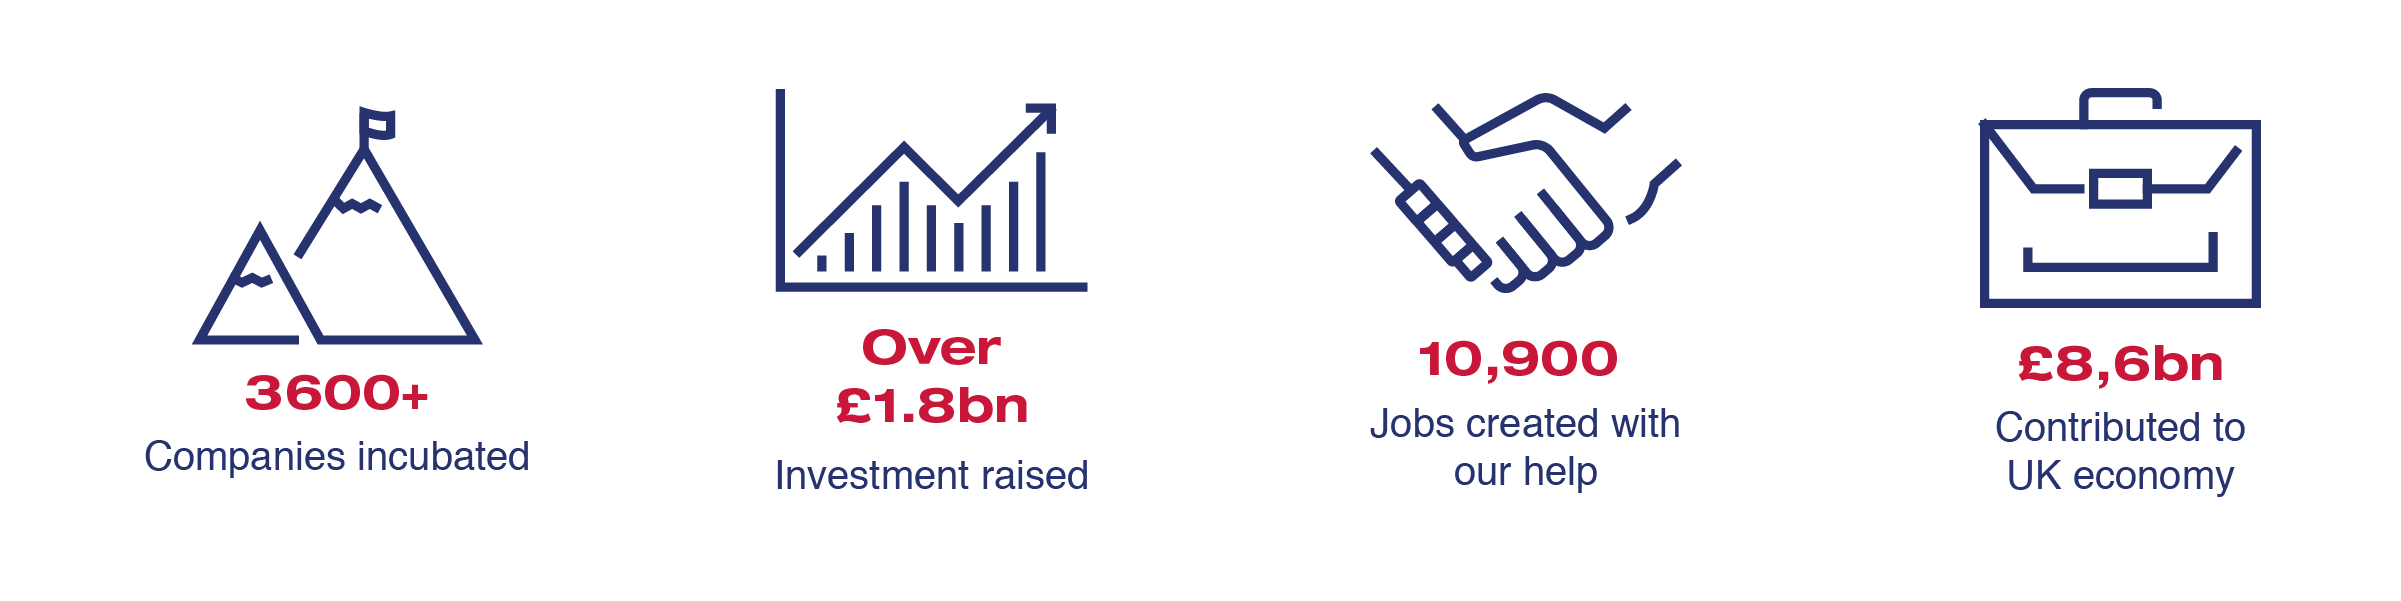 SETsquared's economic impact